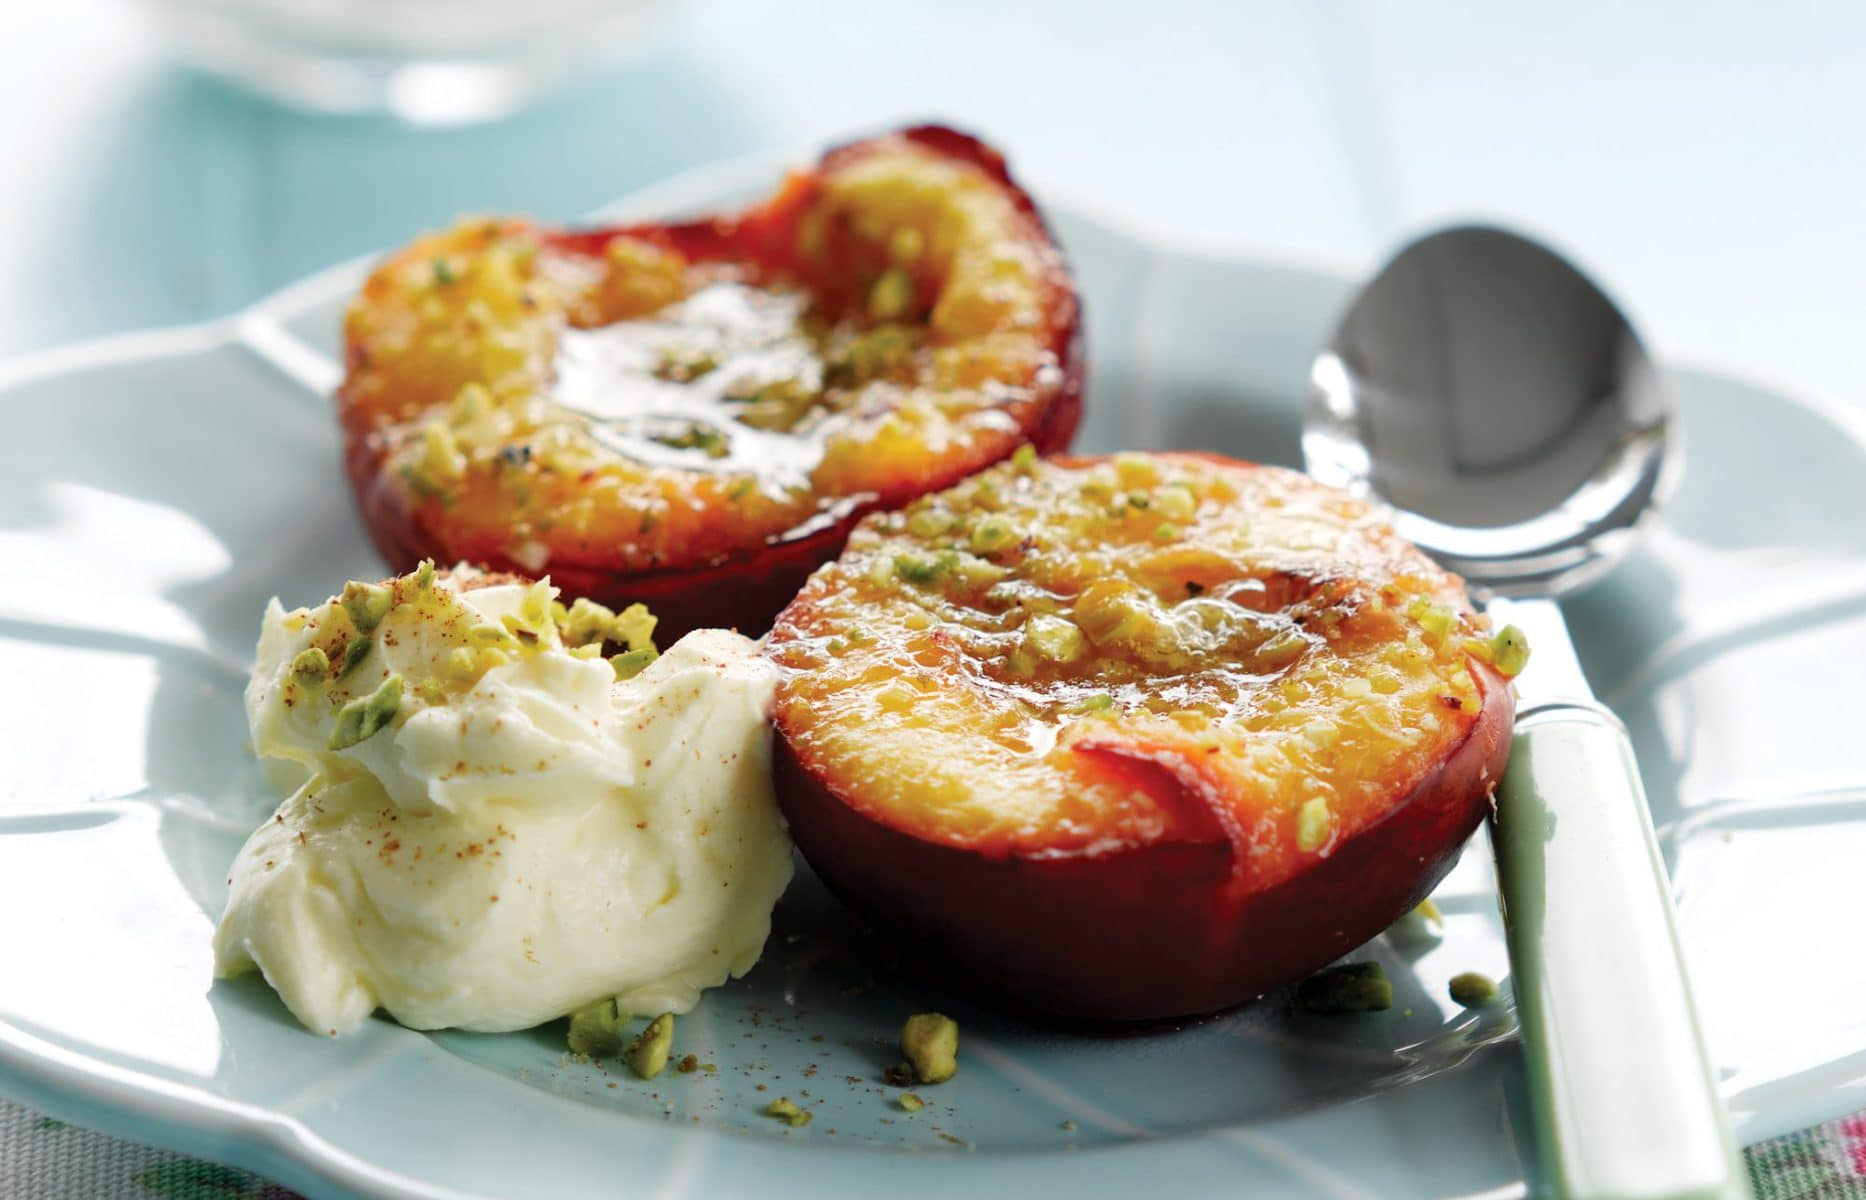 Baked stone fruit with pistachios